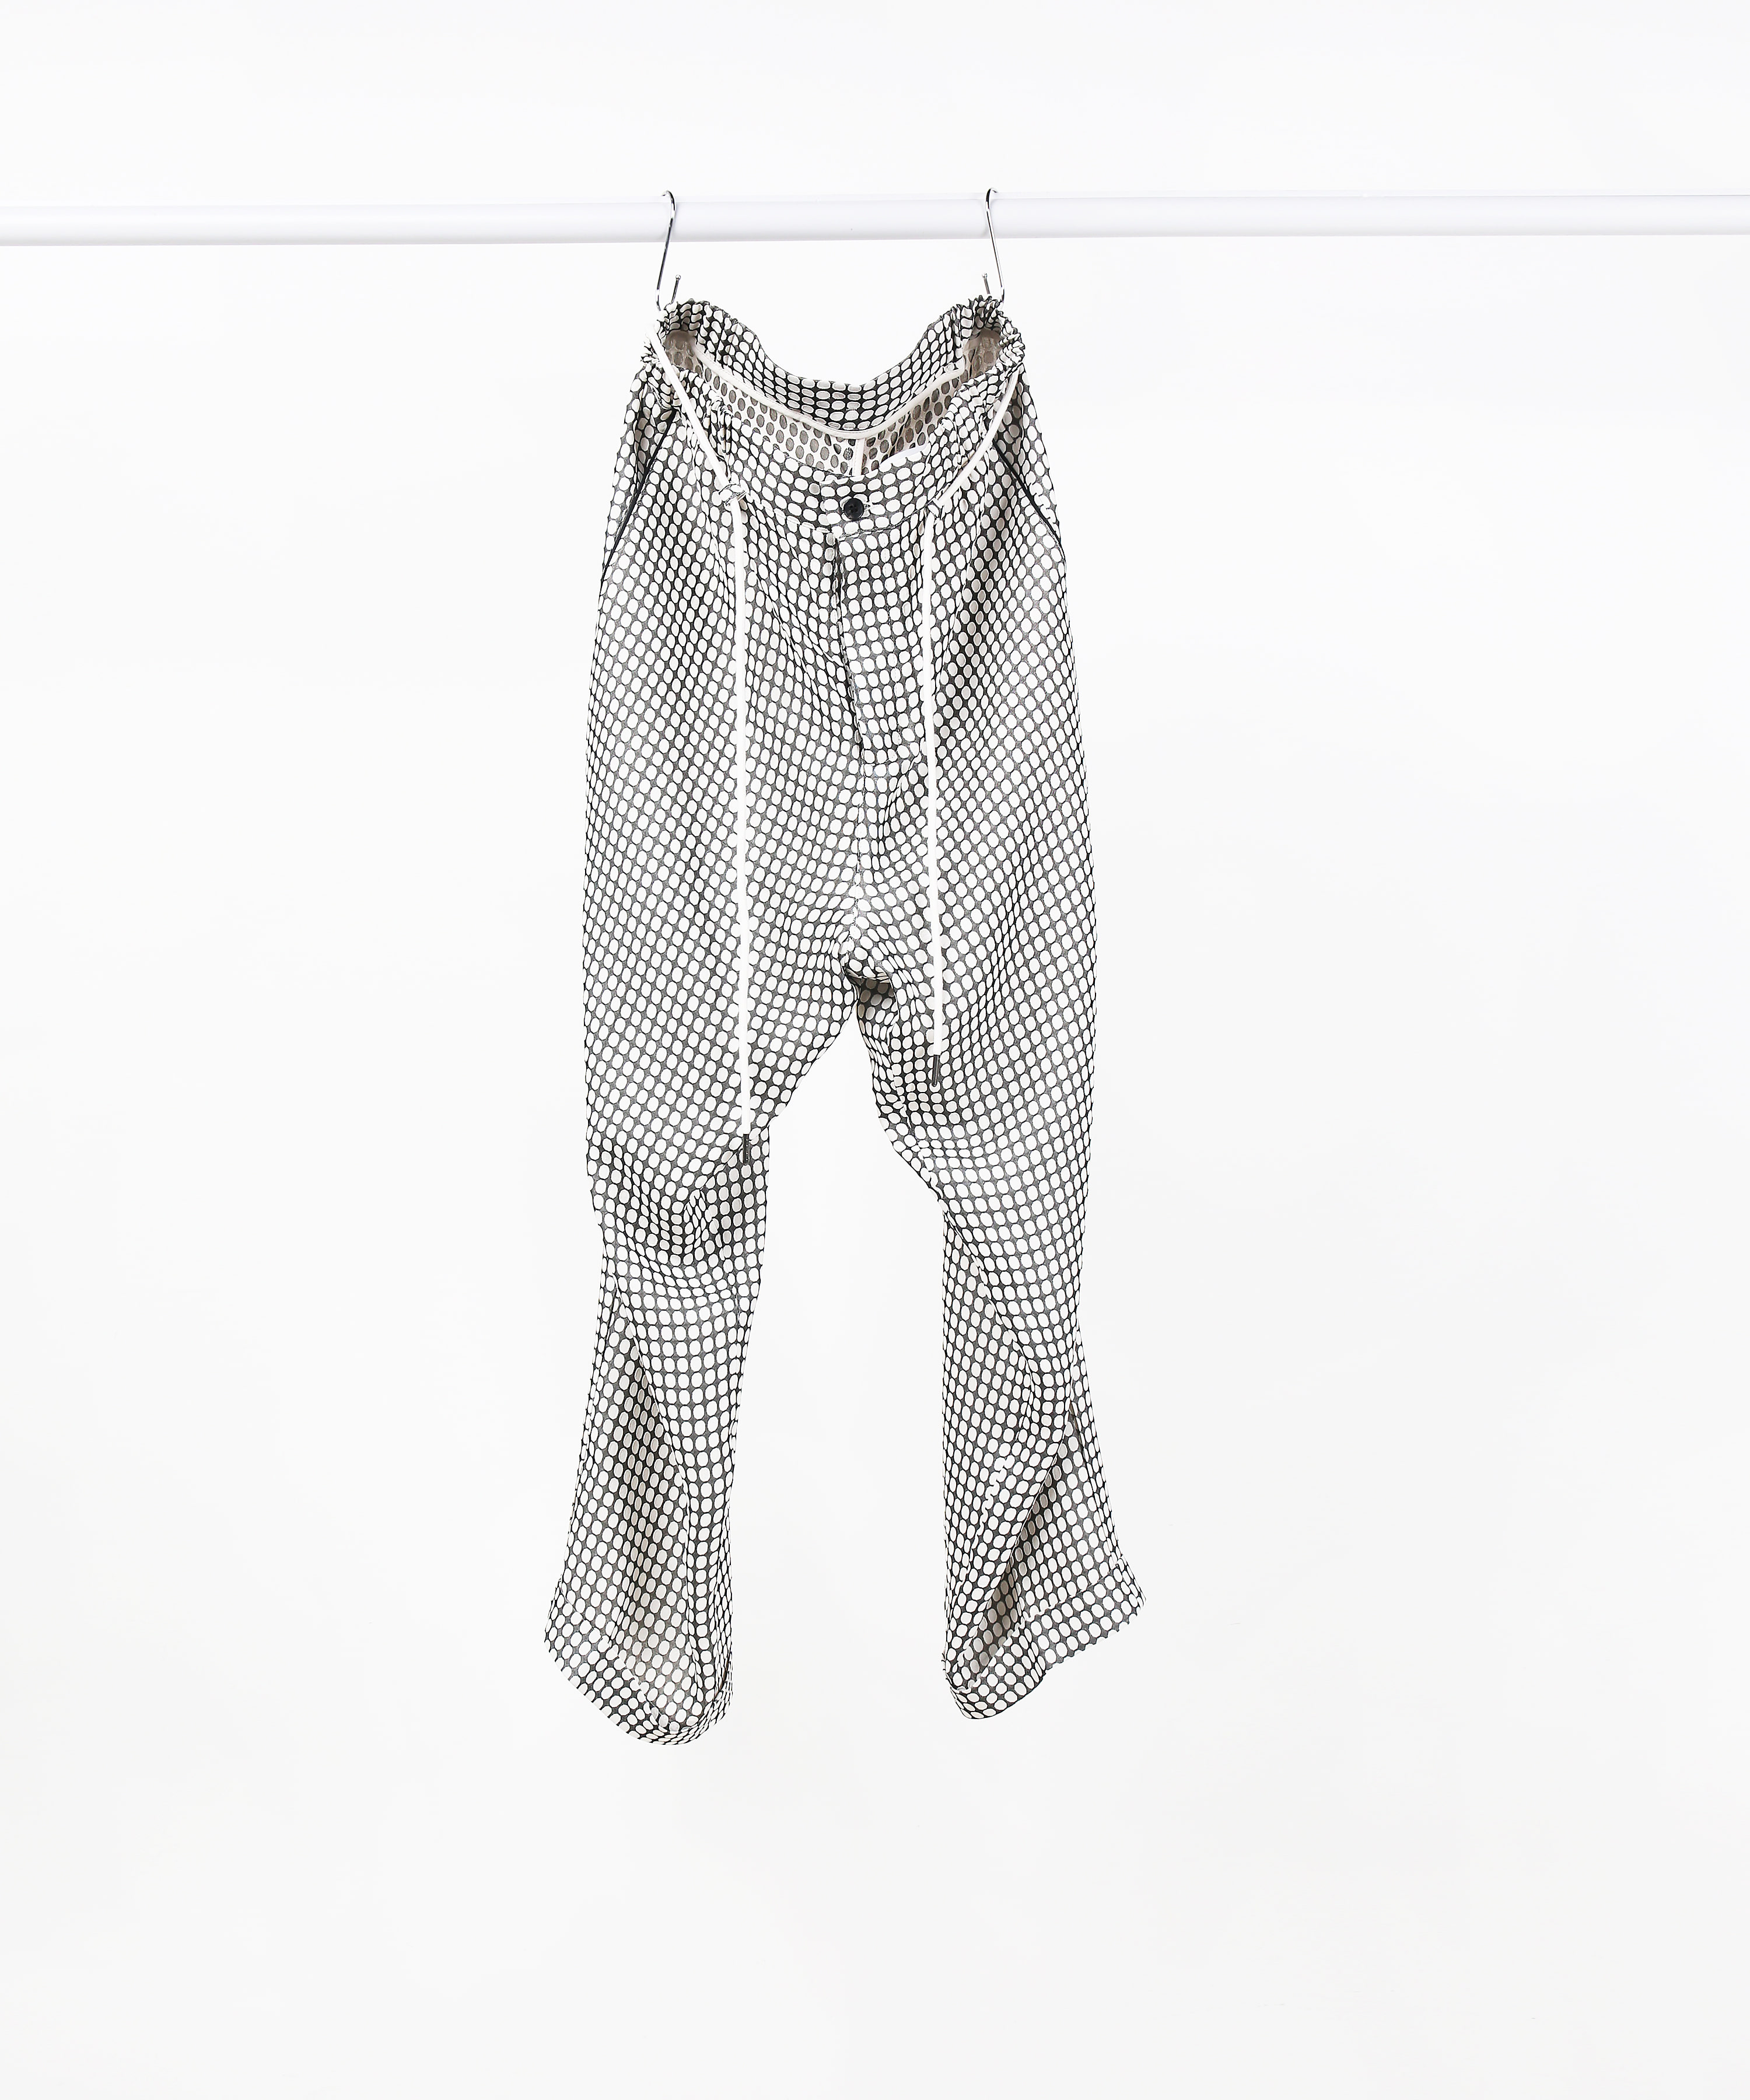 [DISTANCE] BLACK DOTTED JACQUARD STRING PANTS